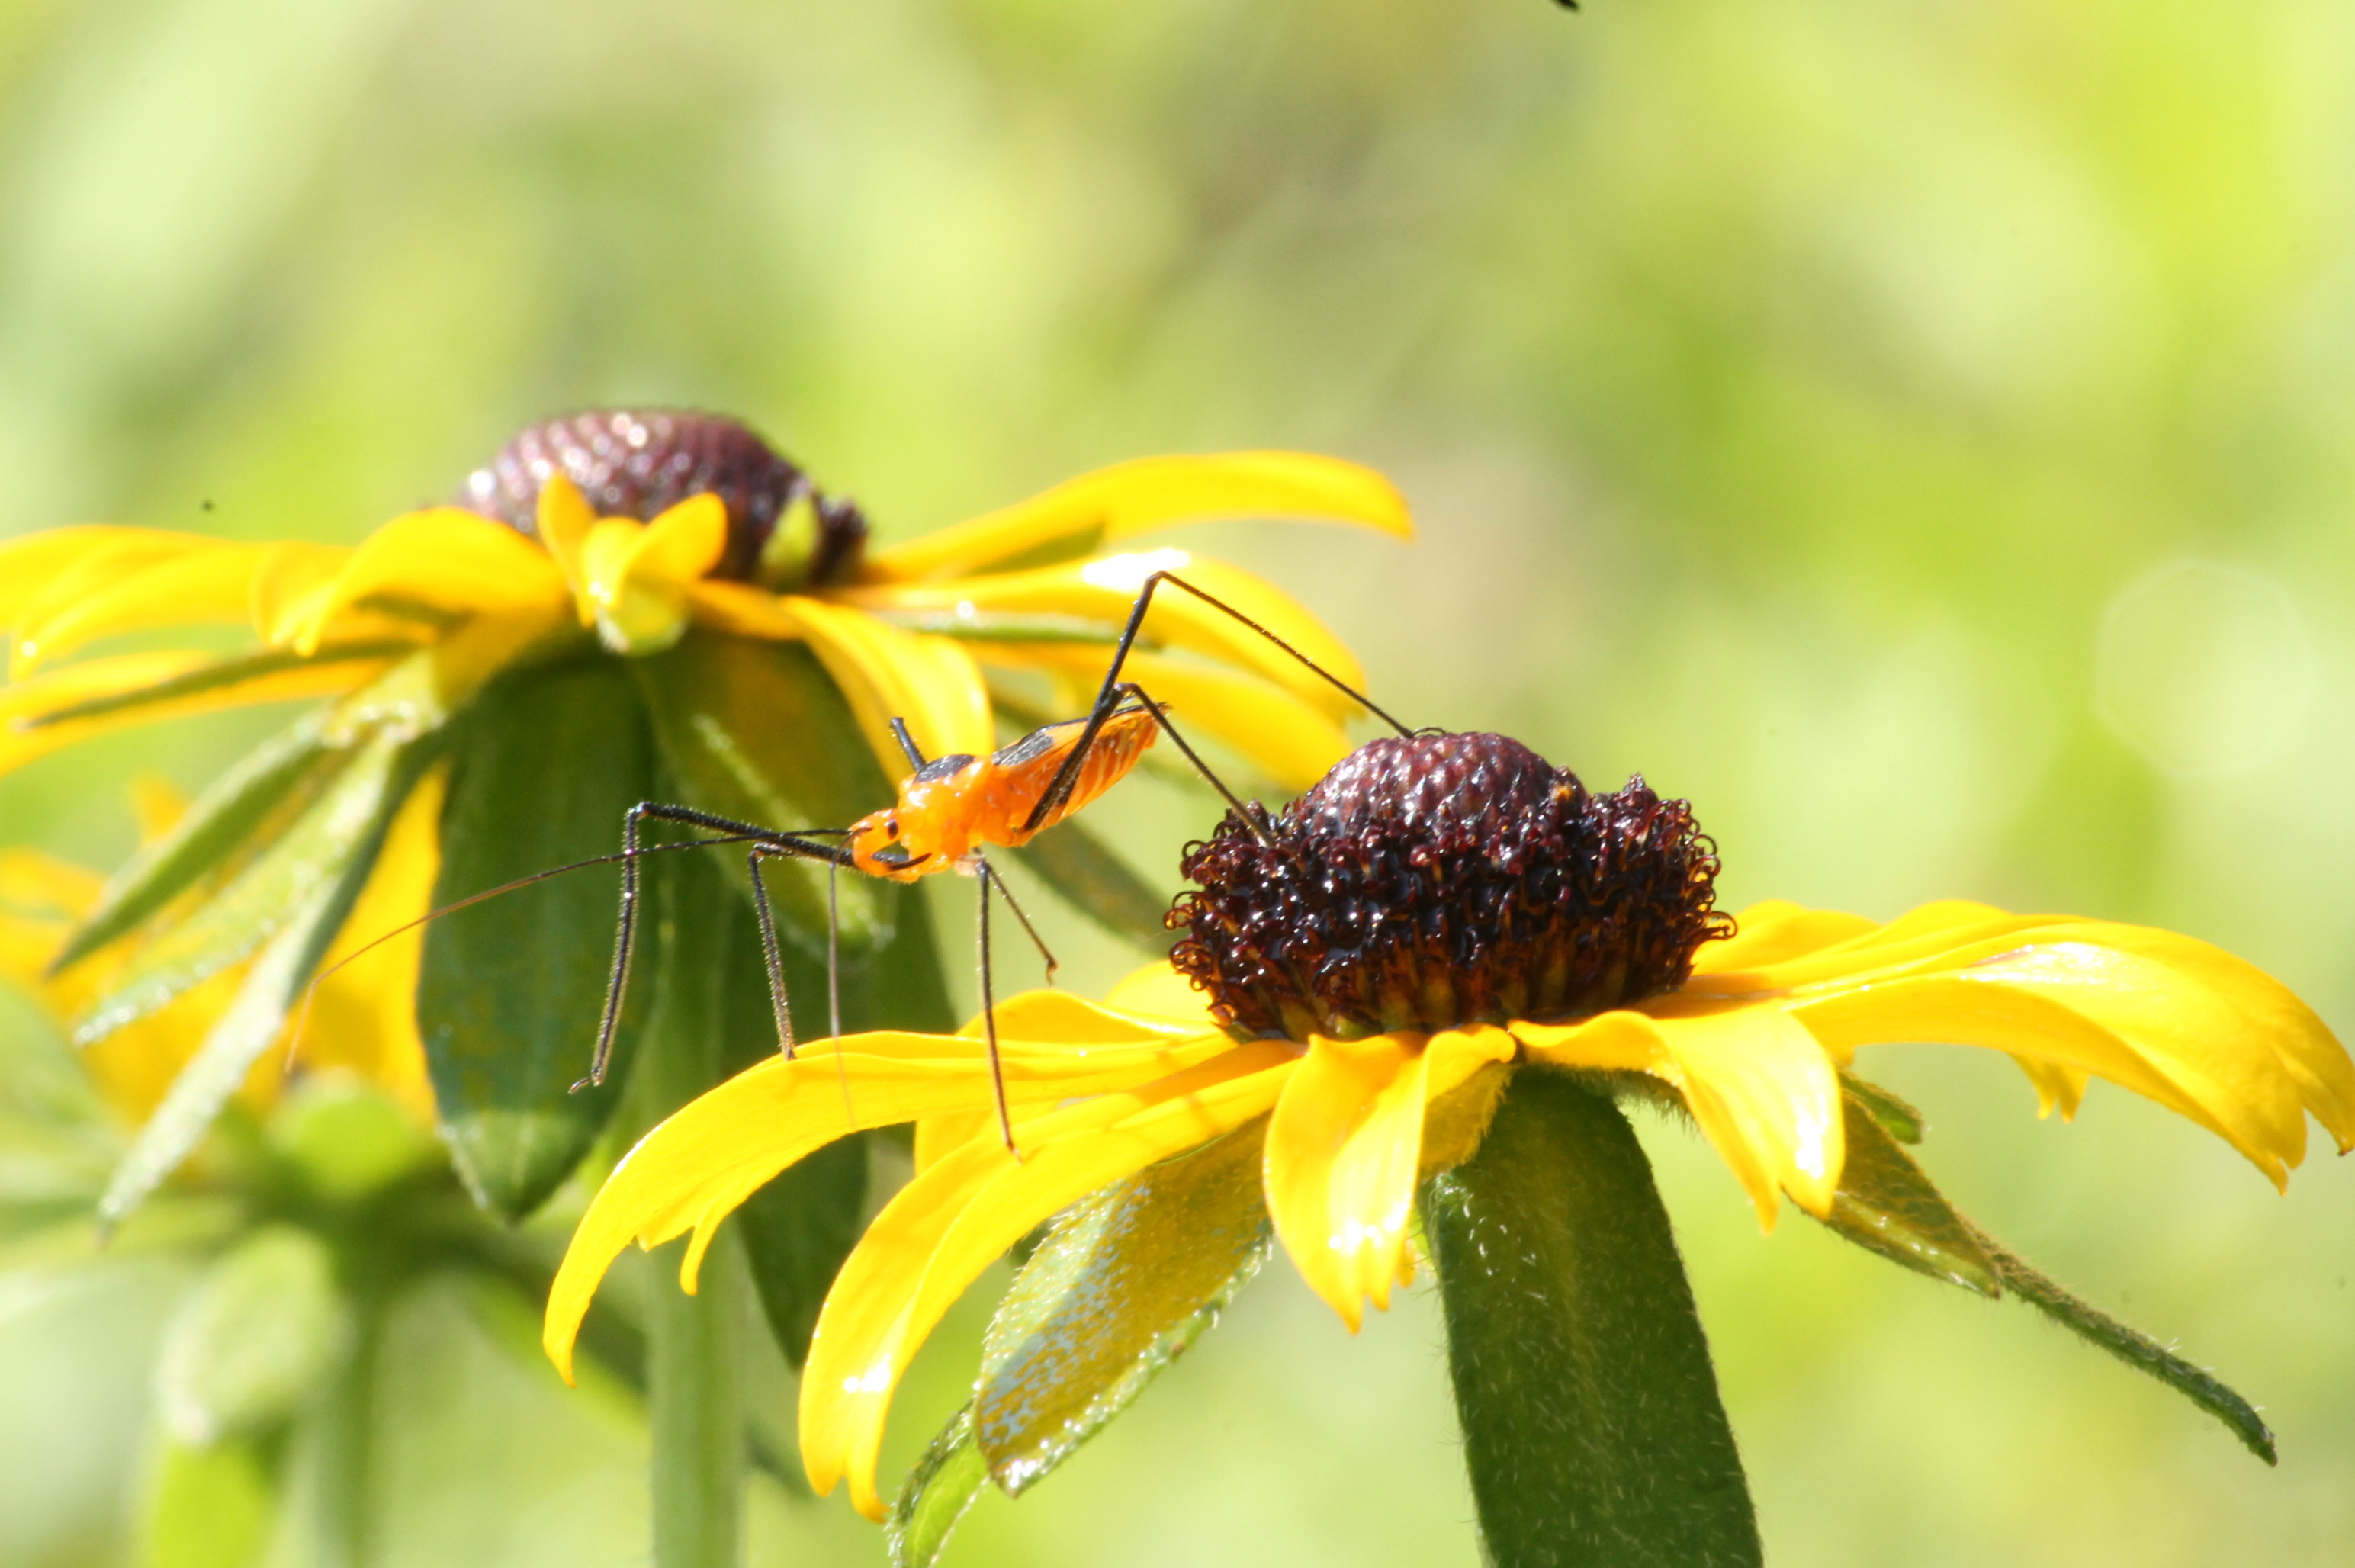 Image of an assassin bug